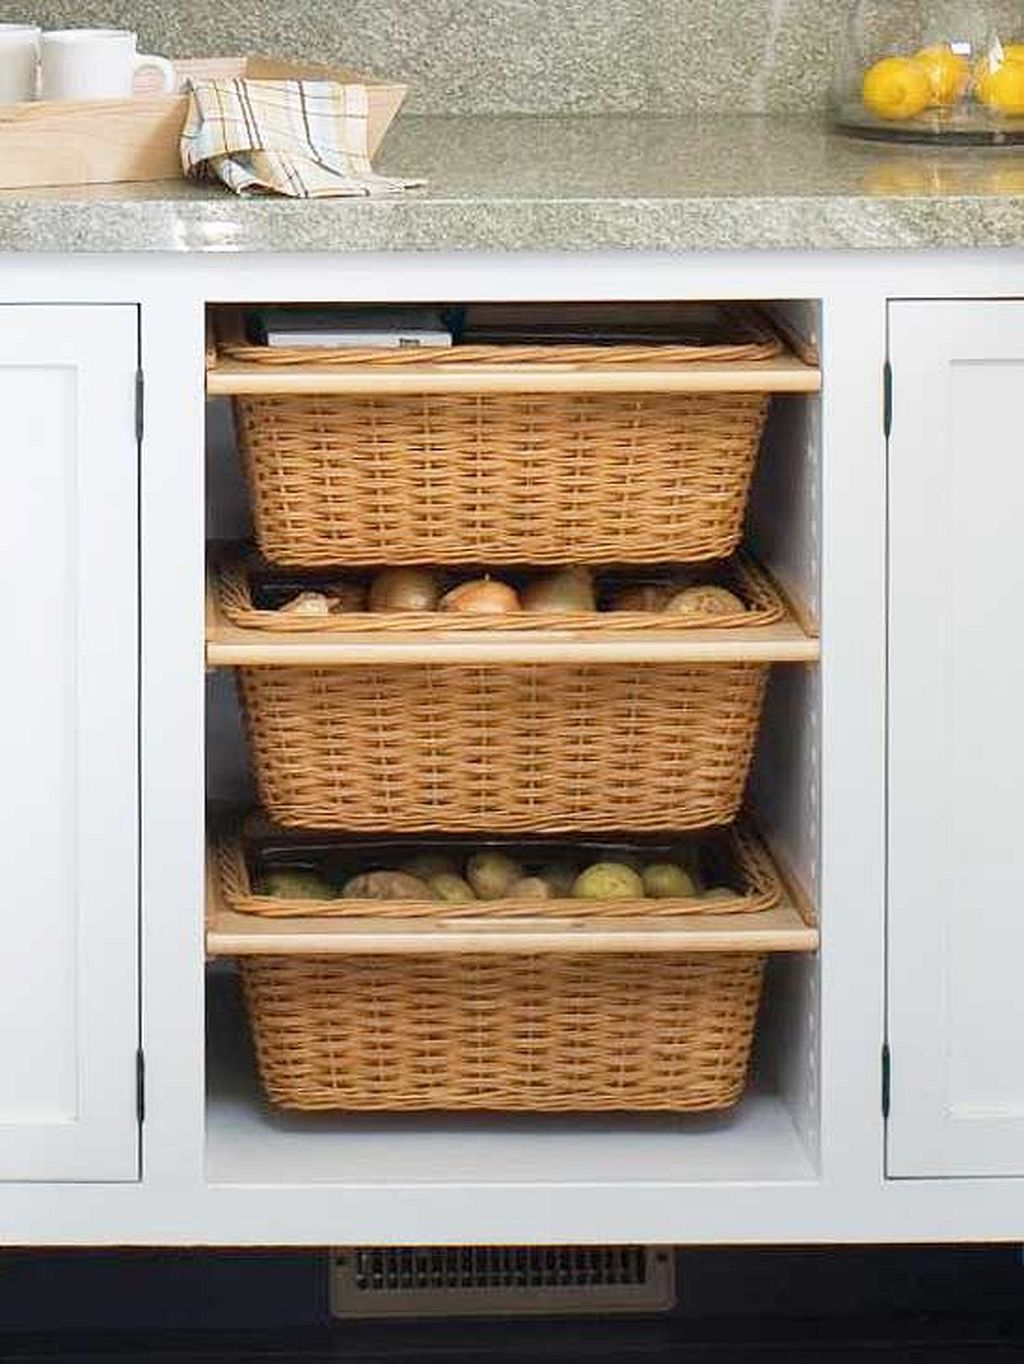 Amazing 35 Brilliant Onion Storage For Your Kitchen Ideas Https Kidmagz Com 35 Brilliant Onion Stor Kitchen Cabinet Storage Diy Kitchen Storage Onion Storage